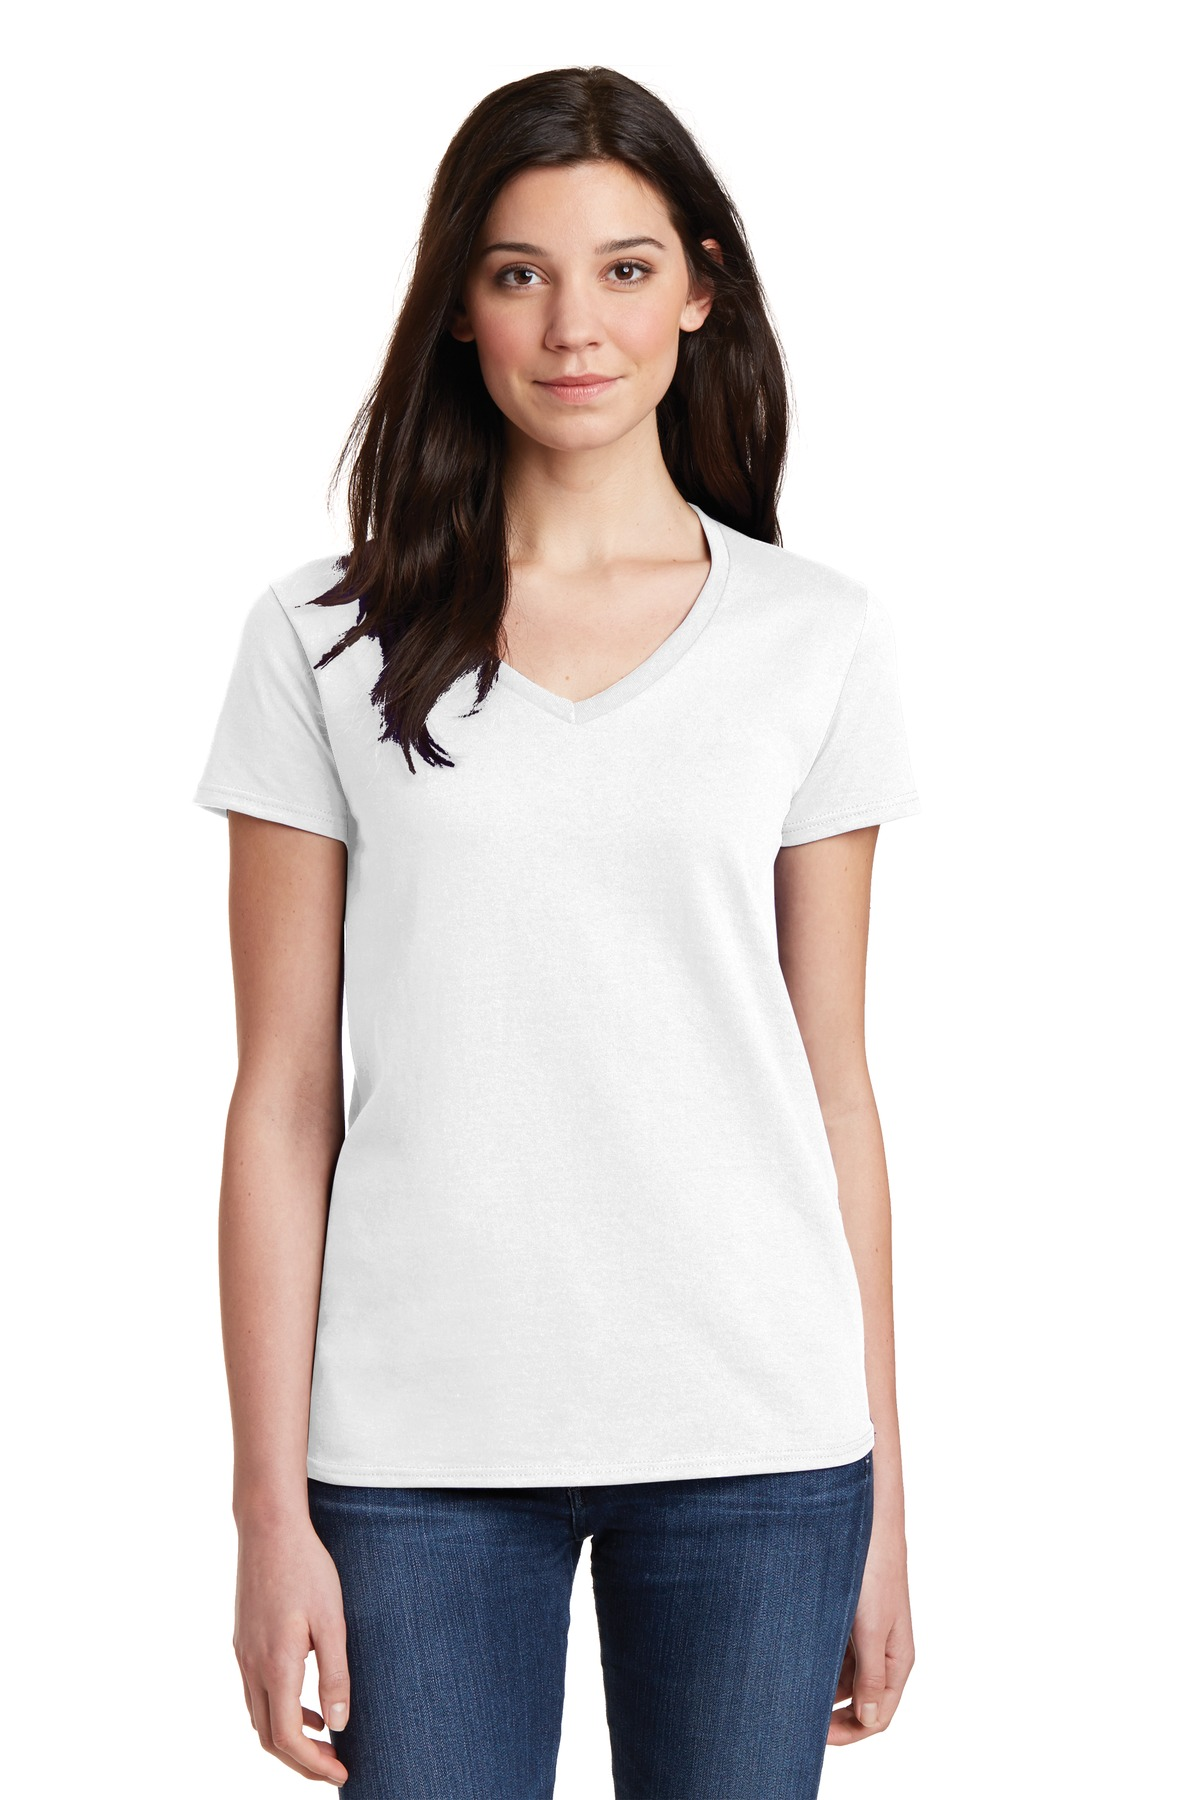 Women's Deep V Neck T-shirts. Showing 40 of results that match your query. Search Product Result. Product - Next Level Women's Rib Knit Short Sleeve Deep V-Neck T-Shirt, Style NL Product - Next Level Apparel Women's Rib Knit Deep V-Neck T .